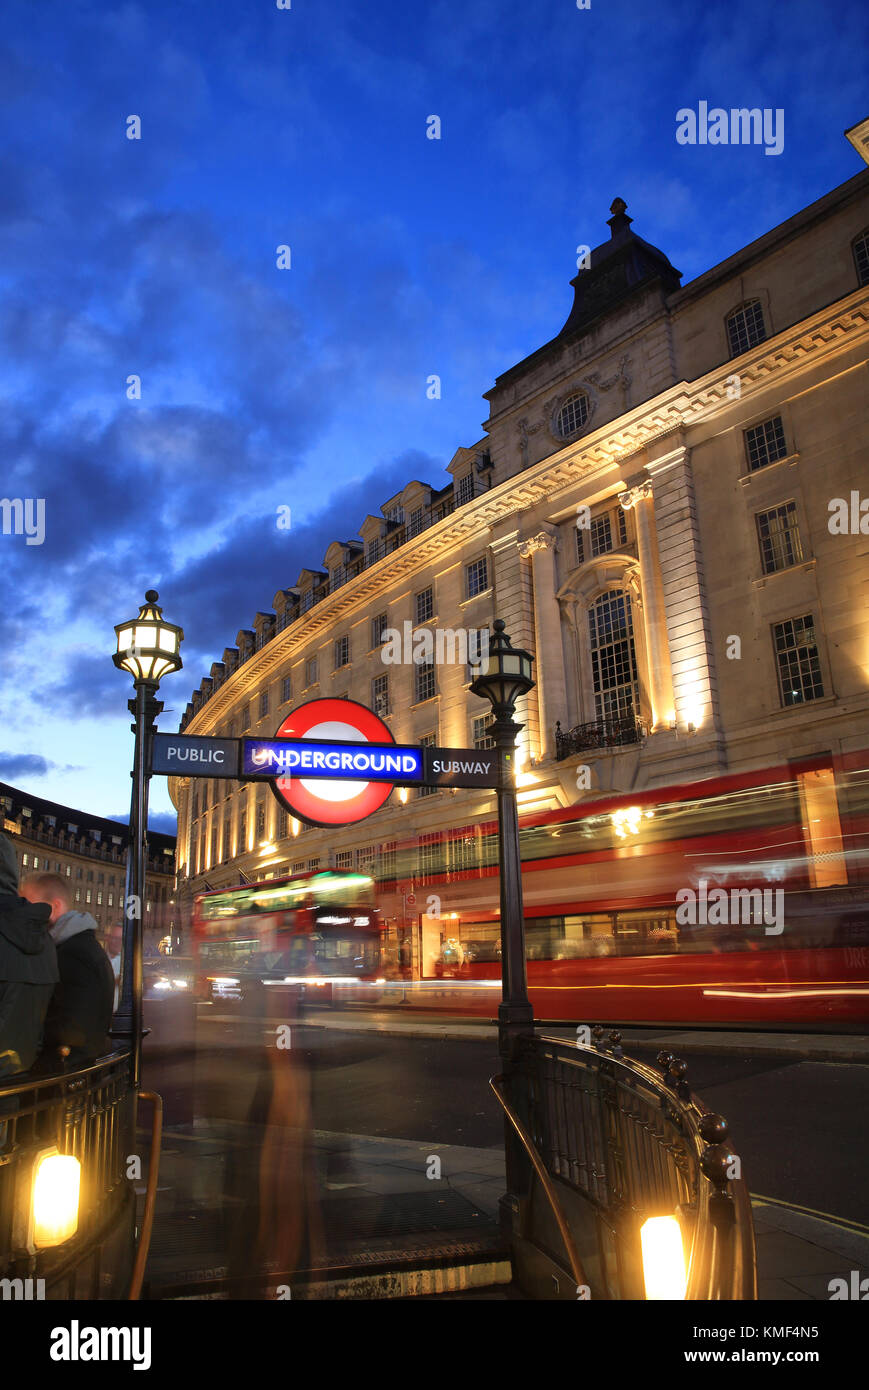 Red buses on Regent Street at dusk, by Piccadilly Circus, in central London, England, UK - Stock Image